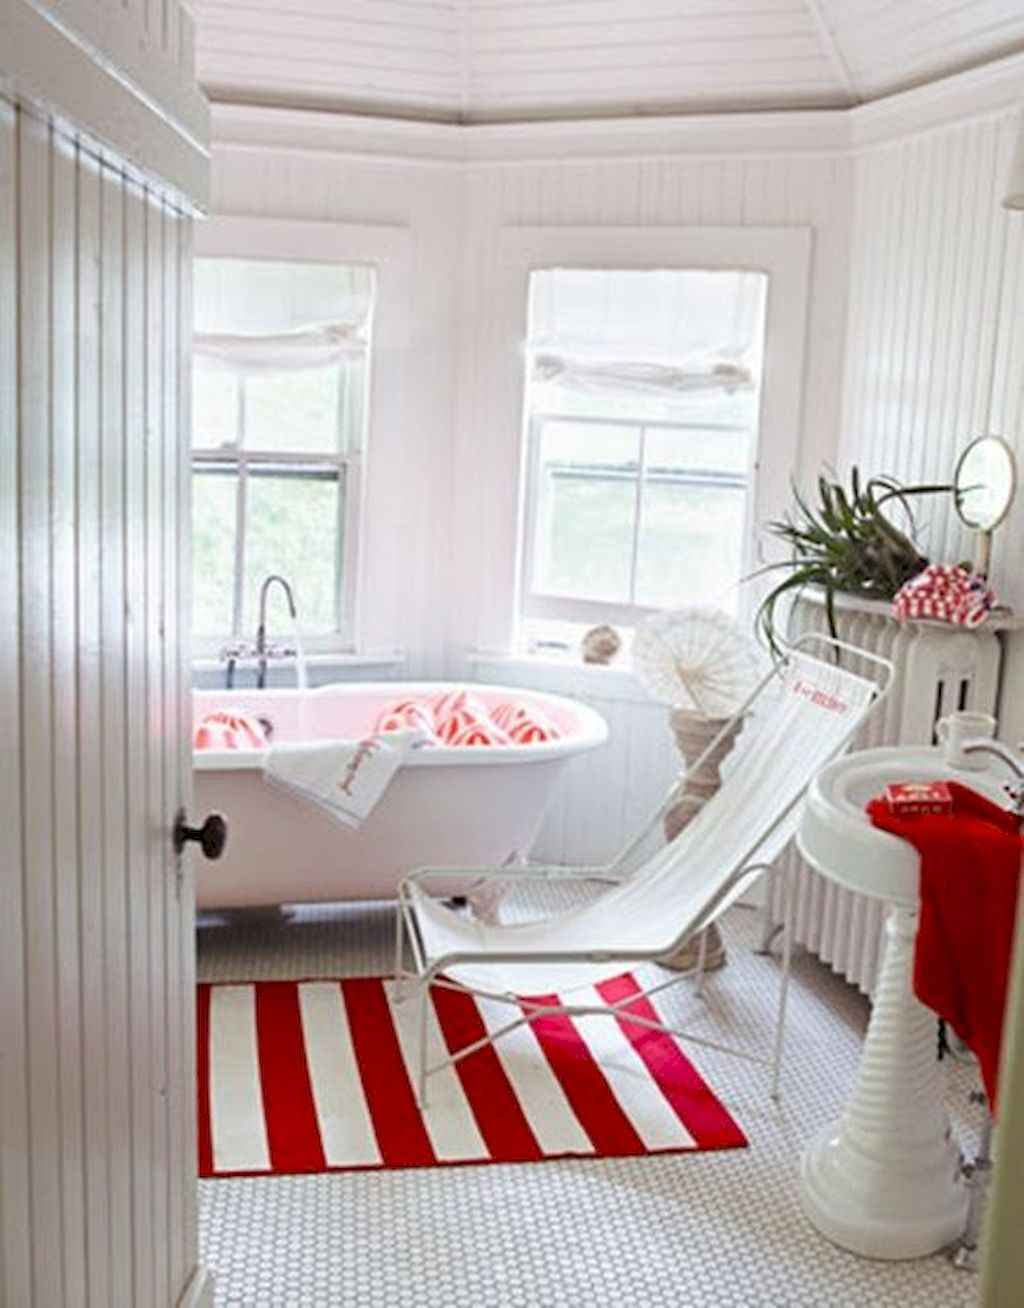 55 Cool and Relax Bathroom Decor Ideas (8)